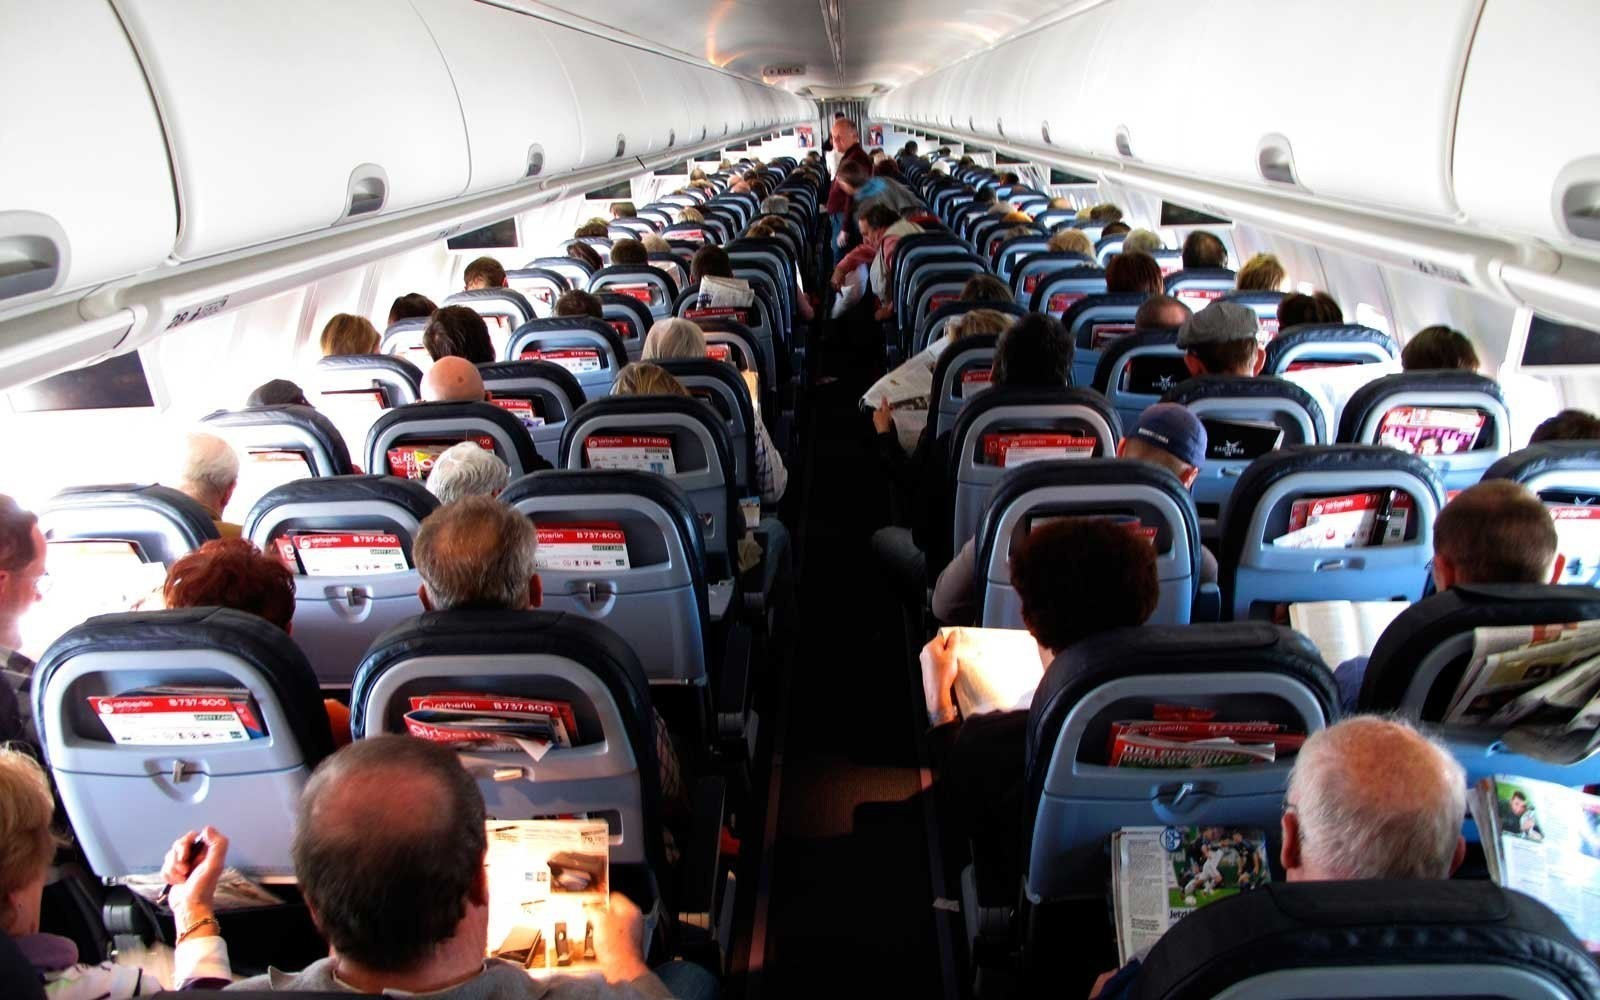 Here's What to Do If You Get Anxious About Turbulence